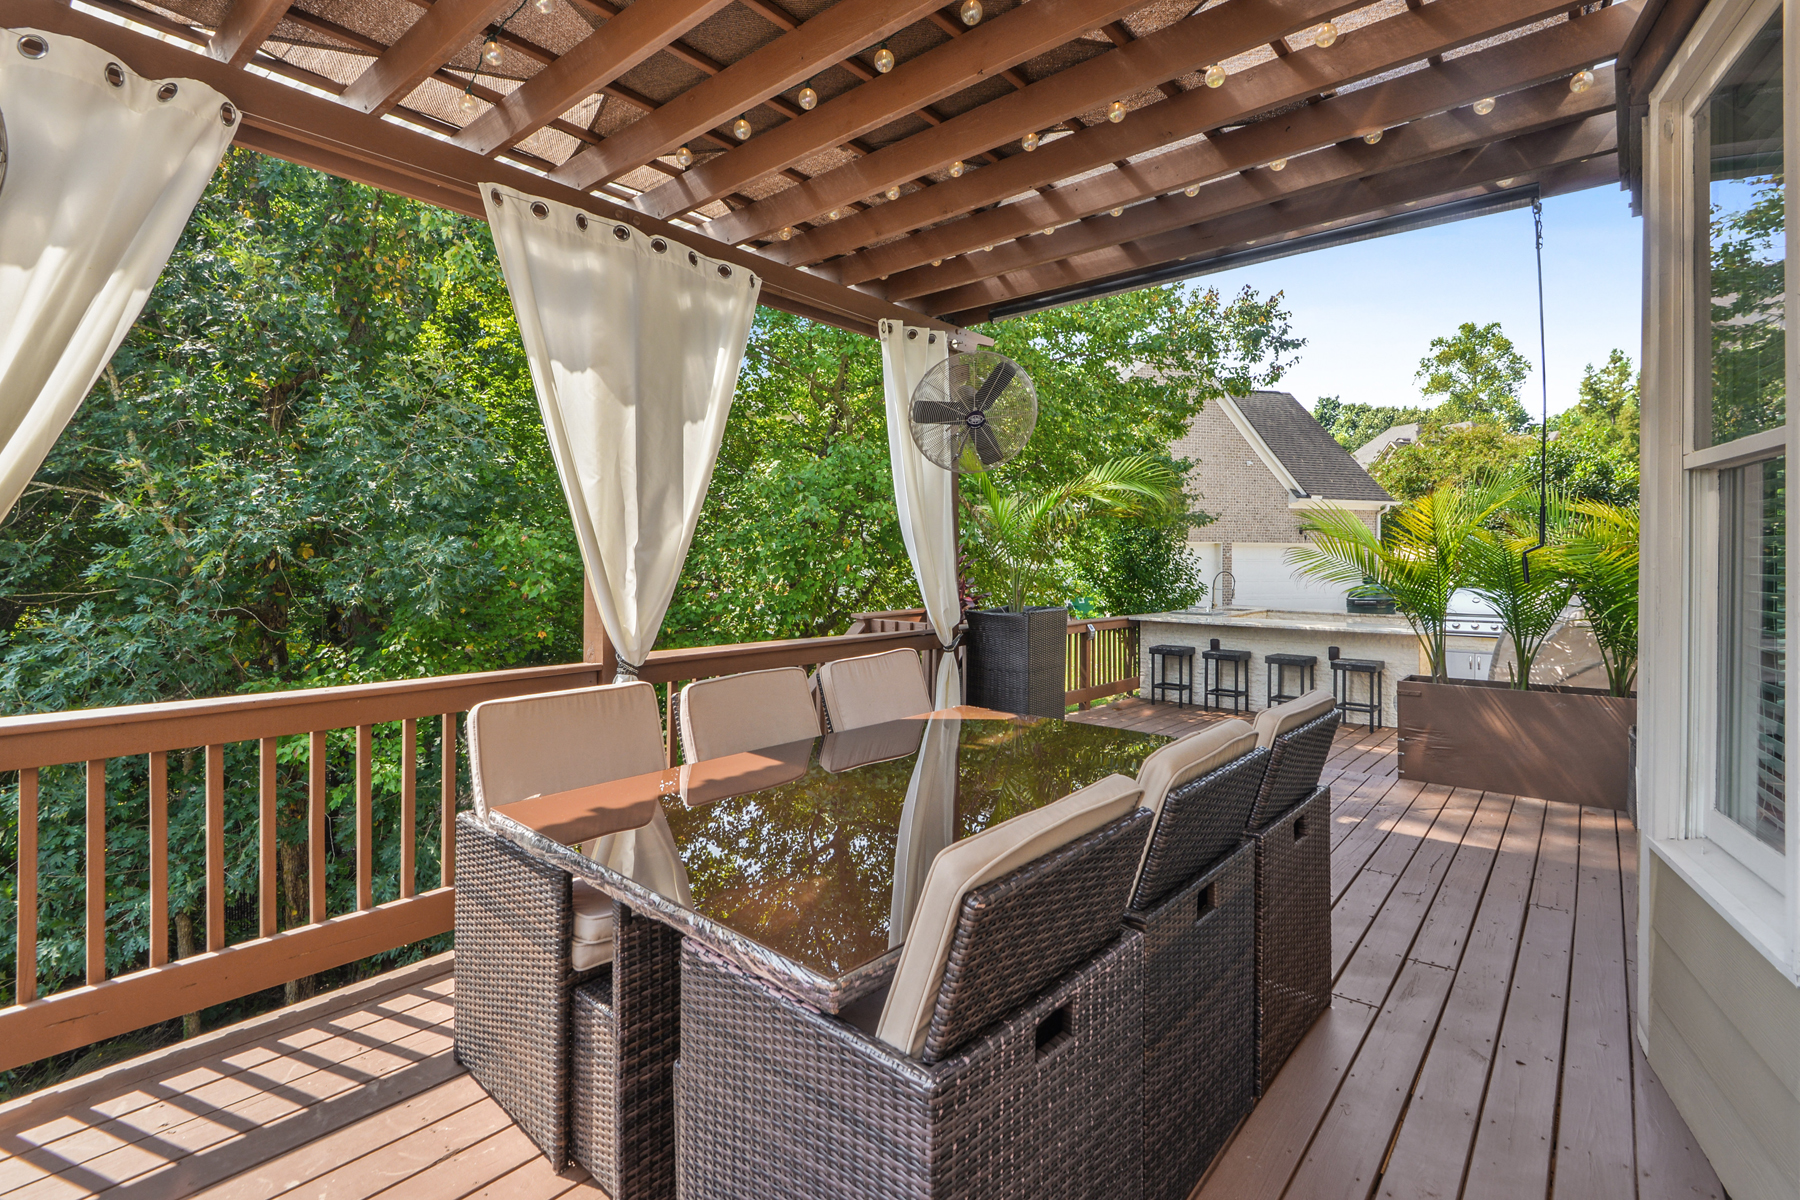 Additional photo for property listing at Completely Renovated John Wieland Vinings Estates Four Level Home 5117 Crescent Cove Lane, Mableton, ジョージア 30126 アメリカ